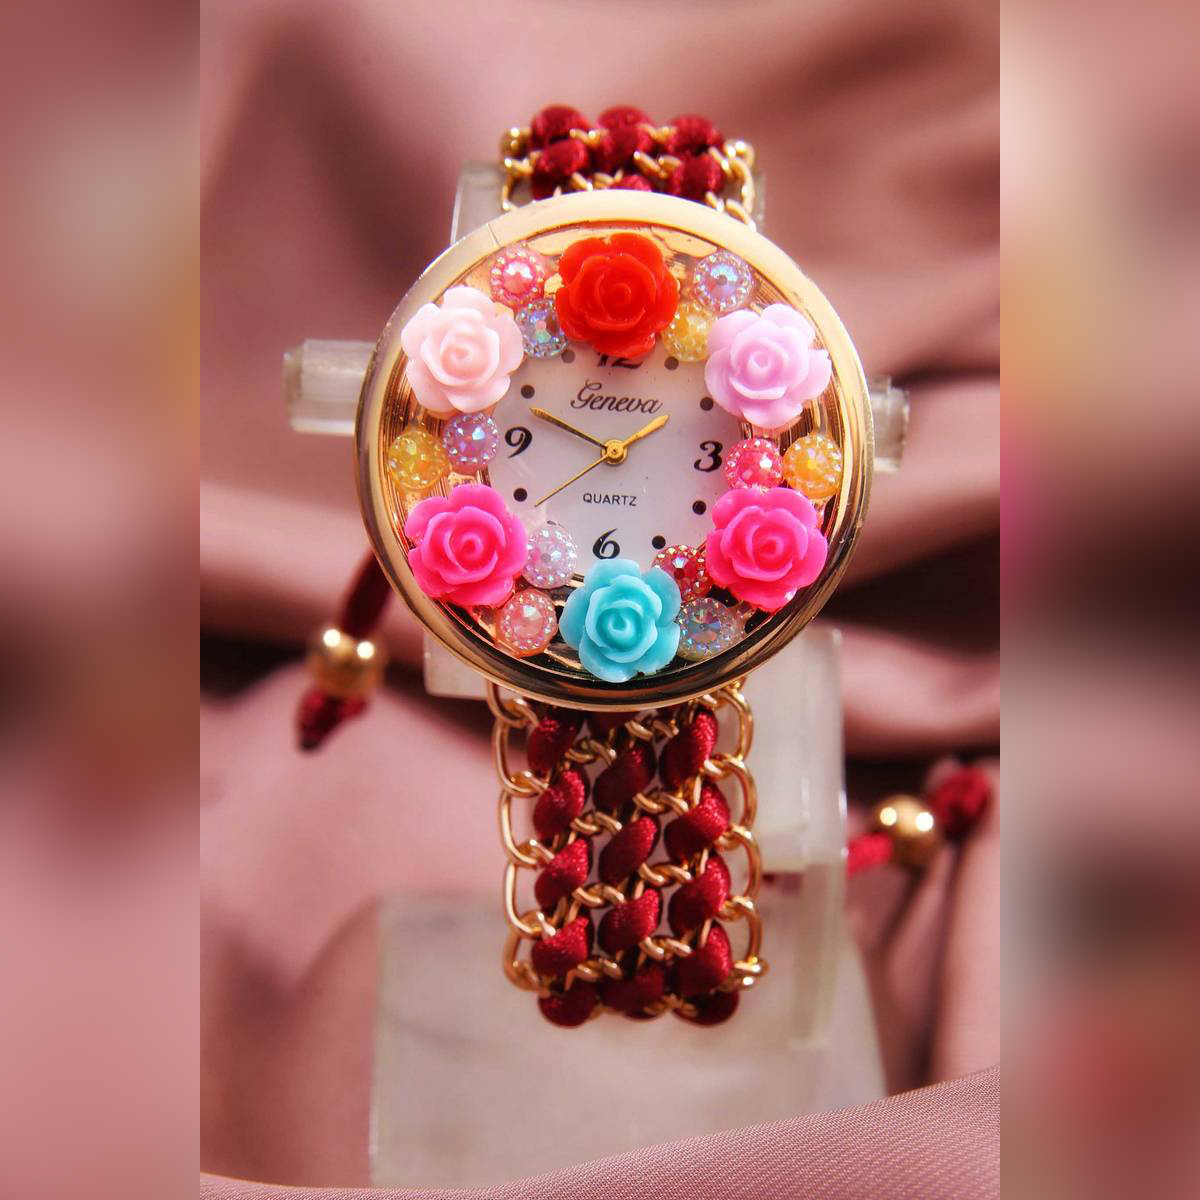 Bracelet Watch for Girls   With BOX, Handmade, Latest & Stylish   New Fashion, Beautiful & Fancy Cute Watch for Girls/Women/Ladies   Dori Fashion Design Watch with High Quality   Red – Black – Pink - 2020